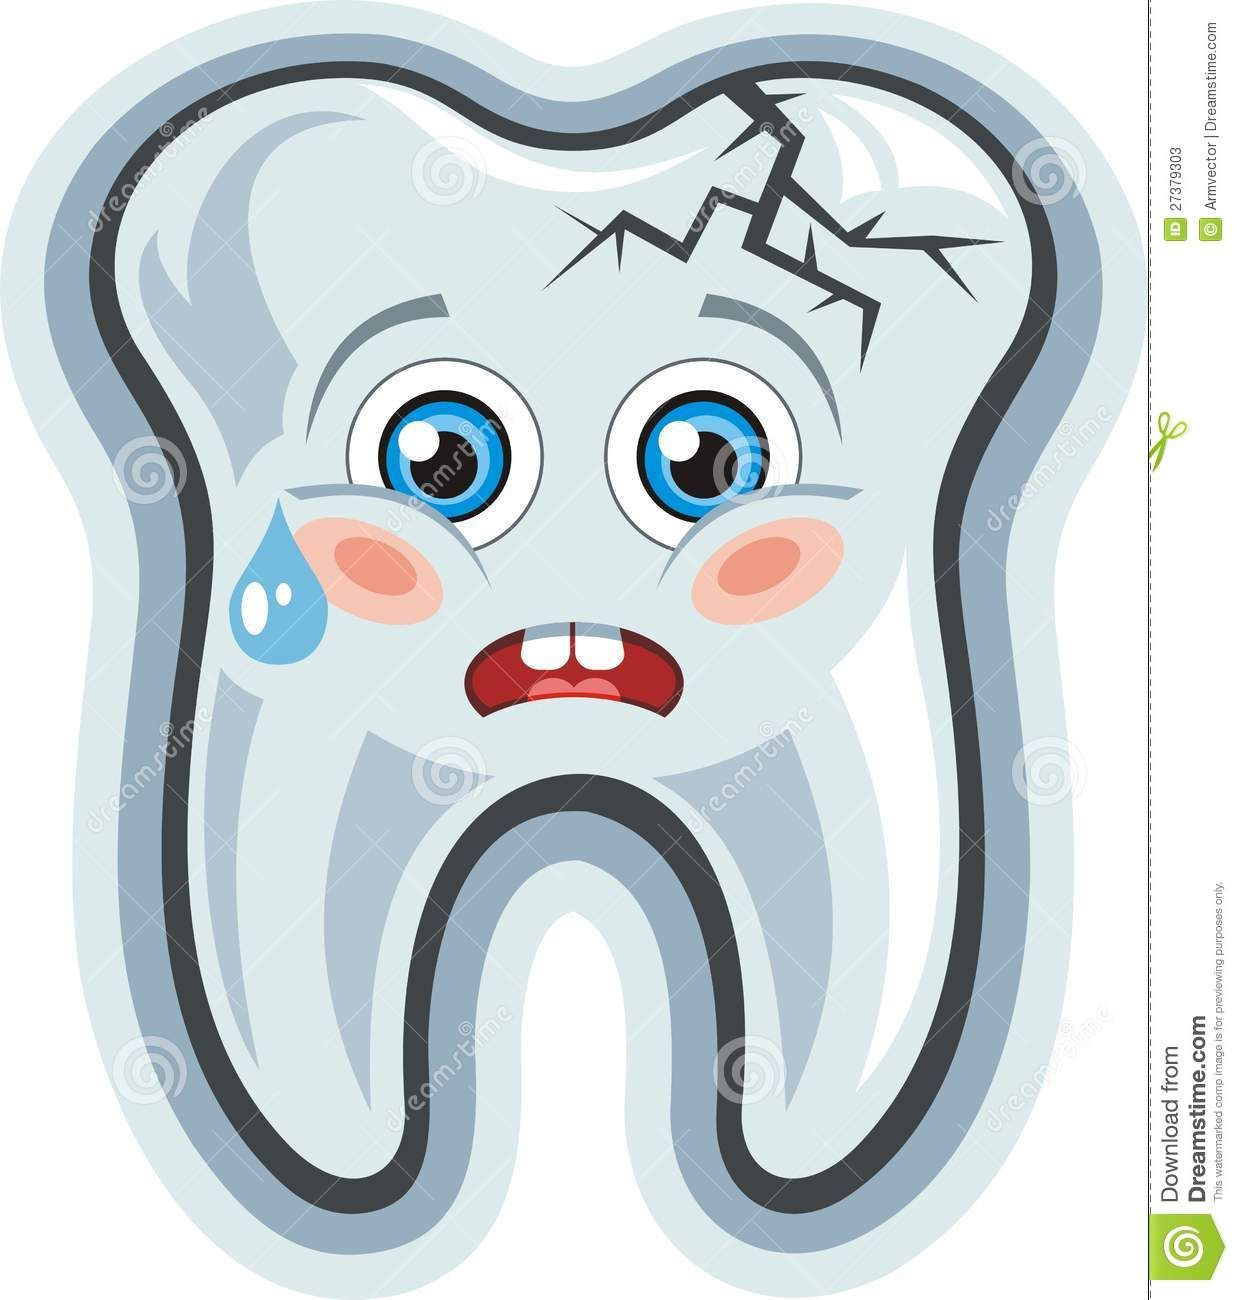 Happy tooth clipart picture library Happy Tooth Clip Art | Vector. Cartoon cute crying tooth.Toothache ... picture library